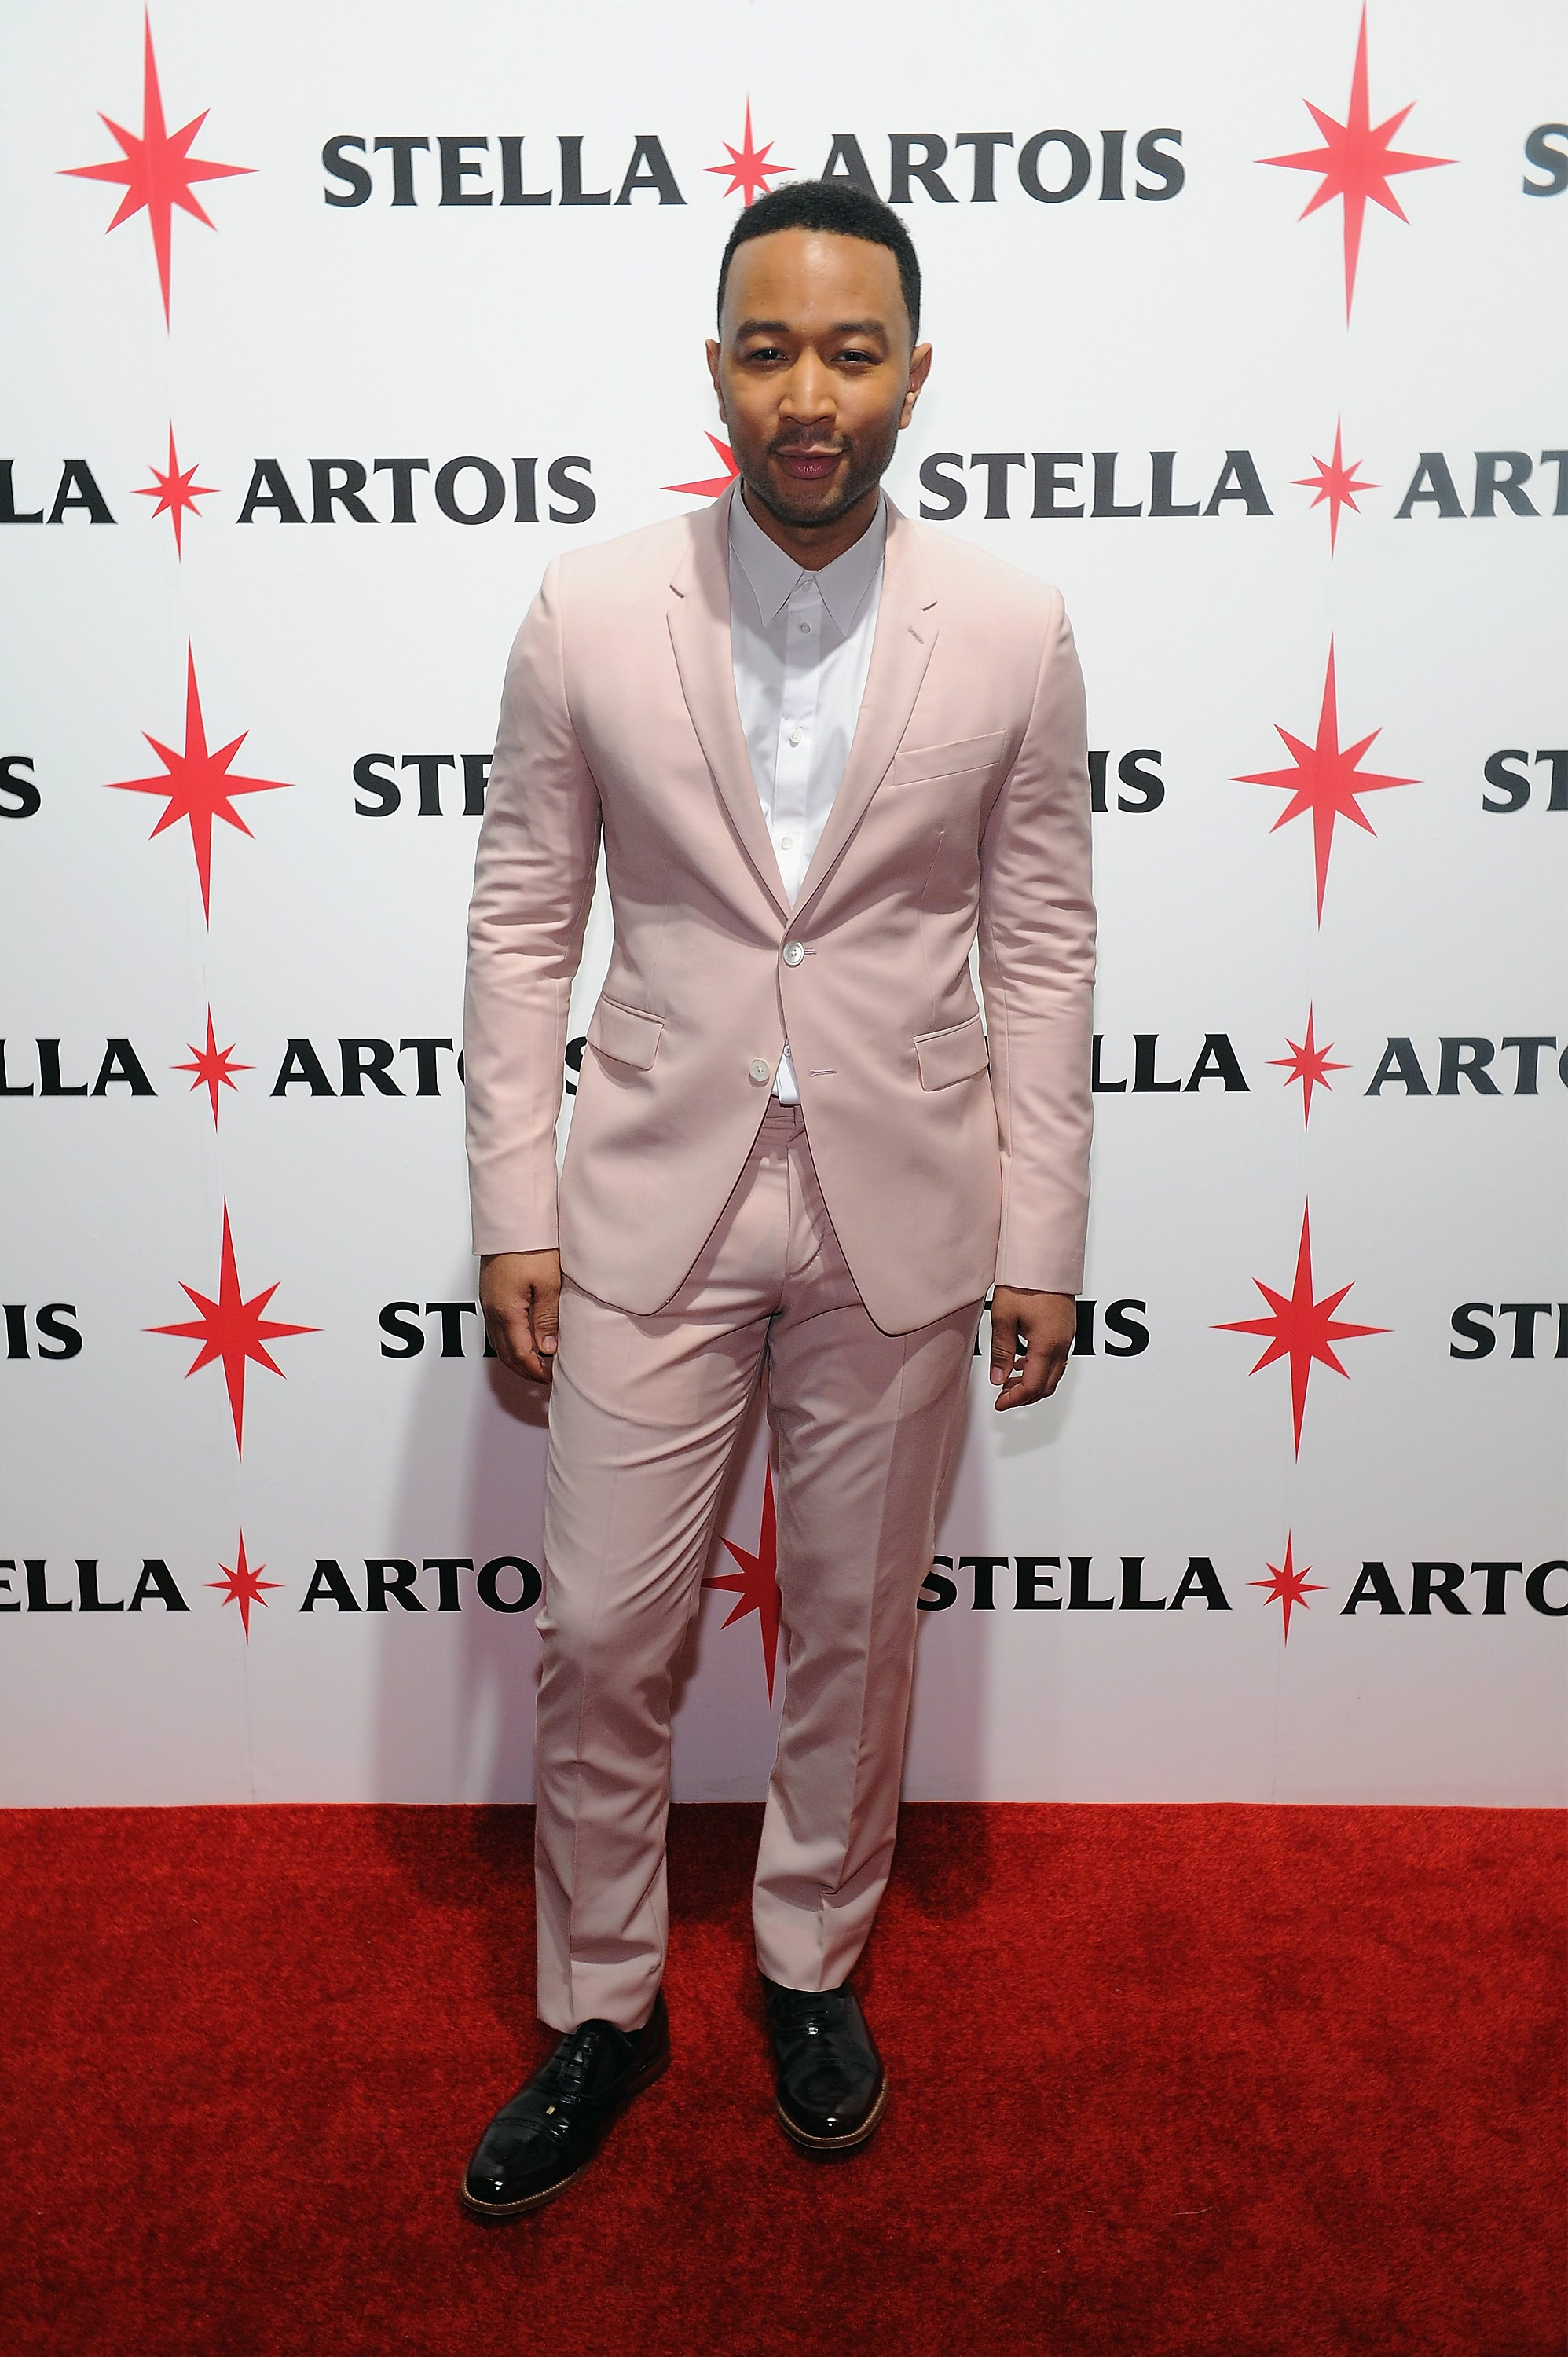 "NEW YORK, NY - DECEMBER 09:  John Legend attends the unveiling of ""Stars"" by Stella Artois where he performed a new holiday song written exclusively for Stella Artois, ""Under the Stars,"" on December 9, 2015 in New York City.  To listen, visit StellaArtois.com.  (Photo by Craig Barritt/Getty Images for Stella Artois)"